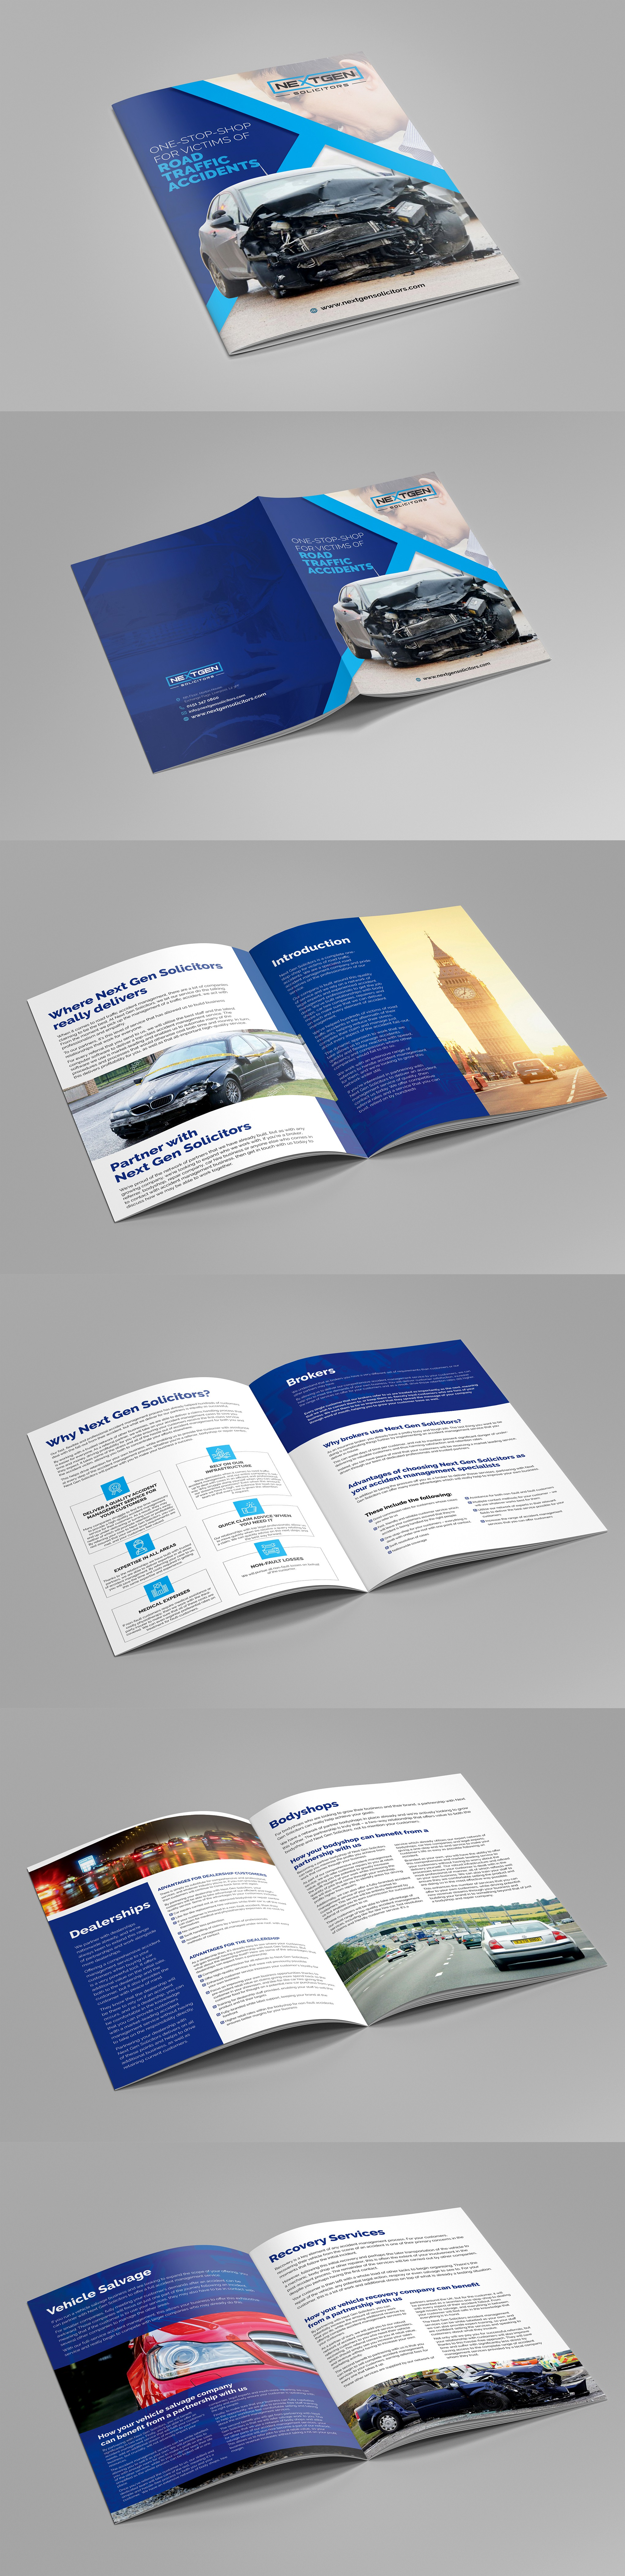 Add pages to brochure you have done